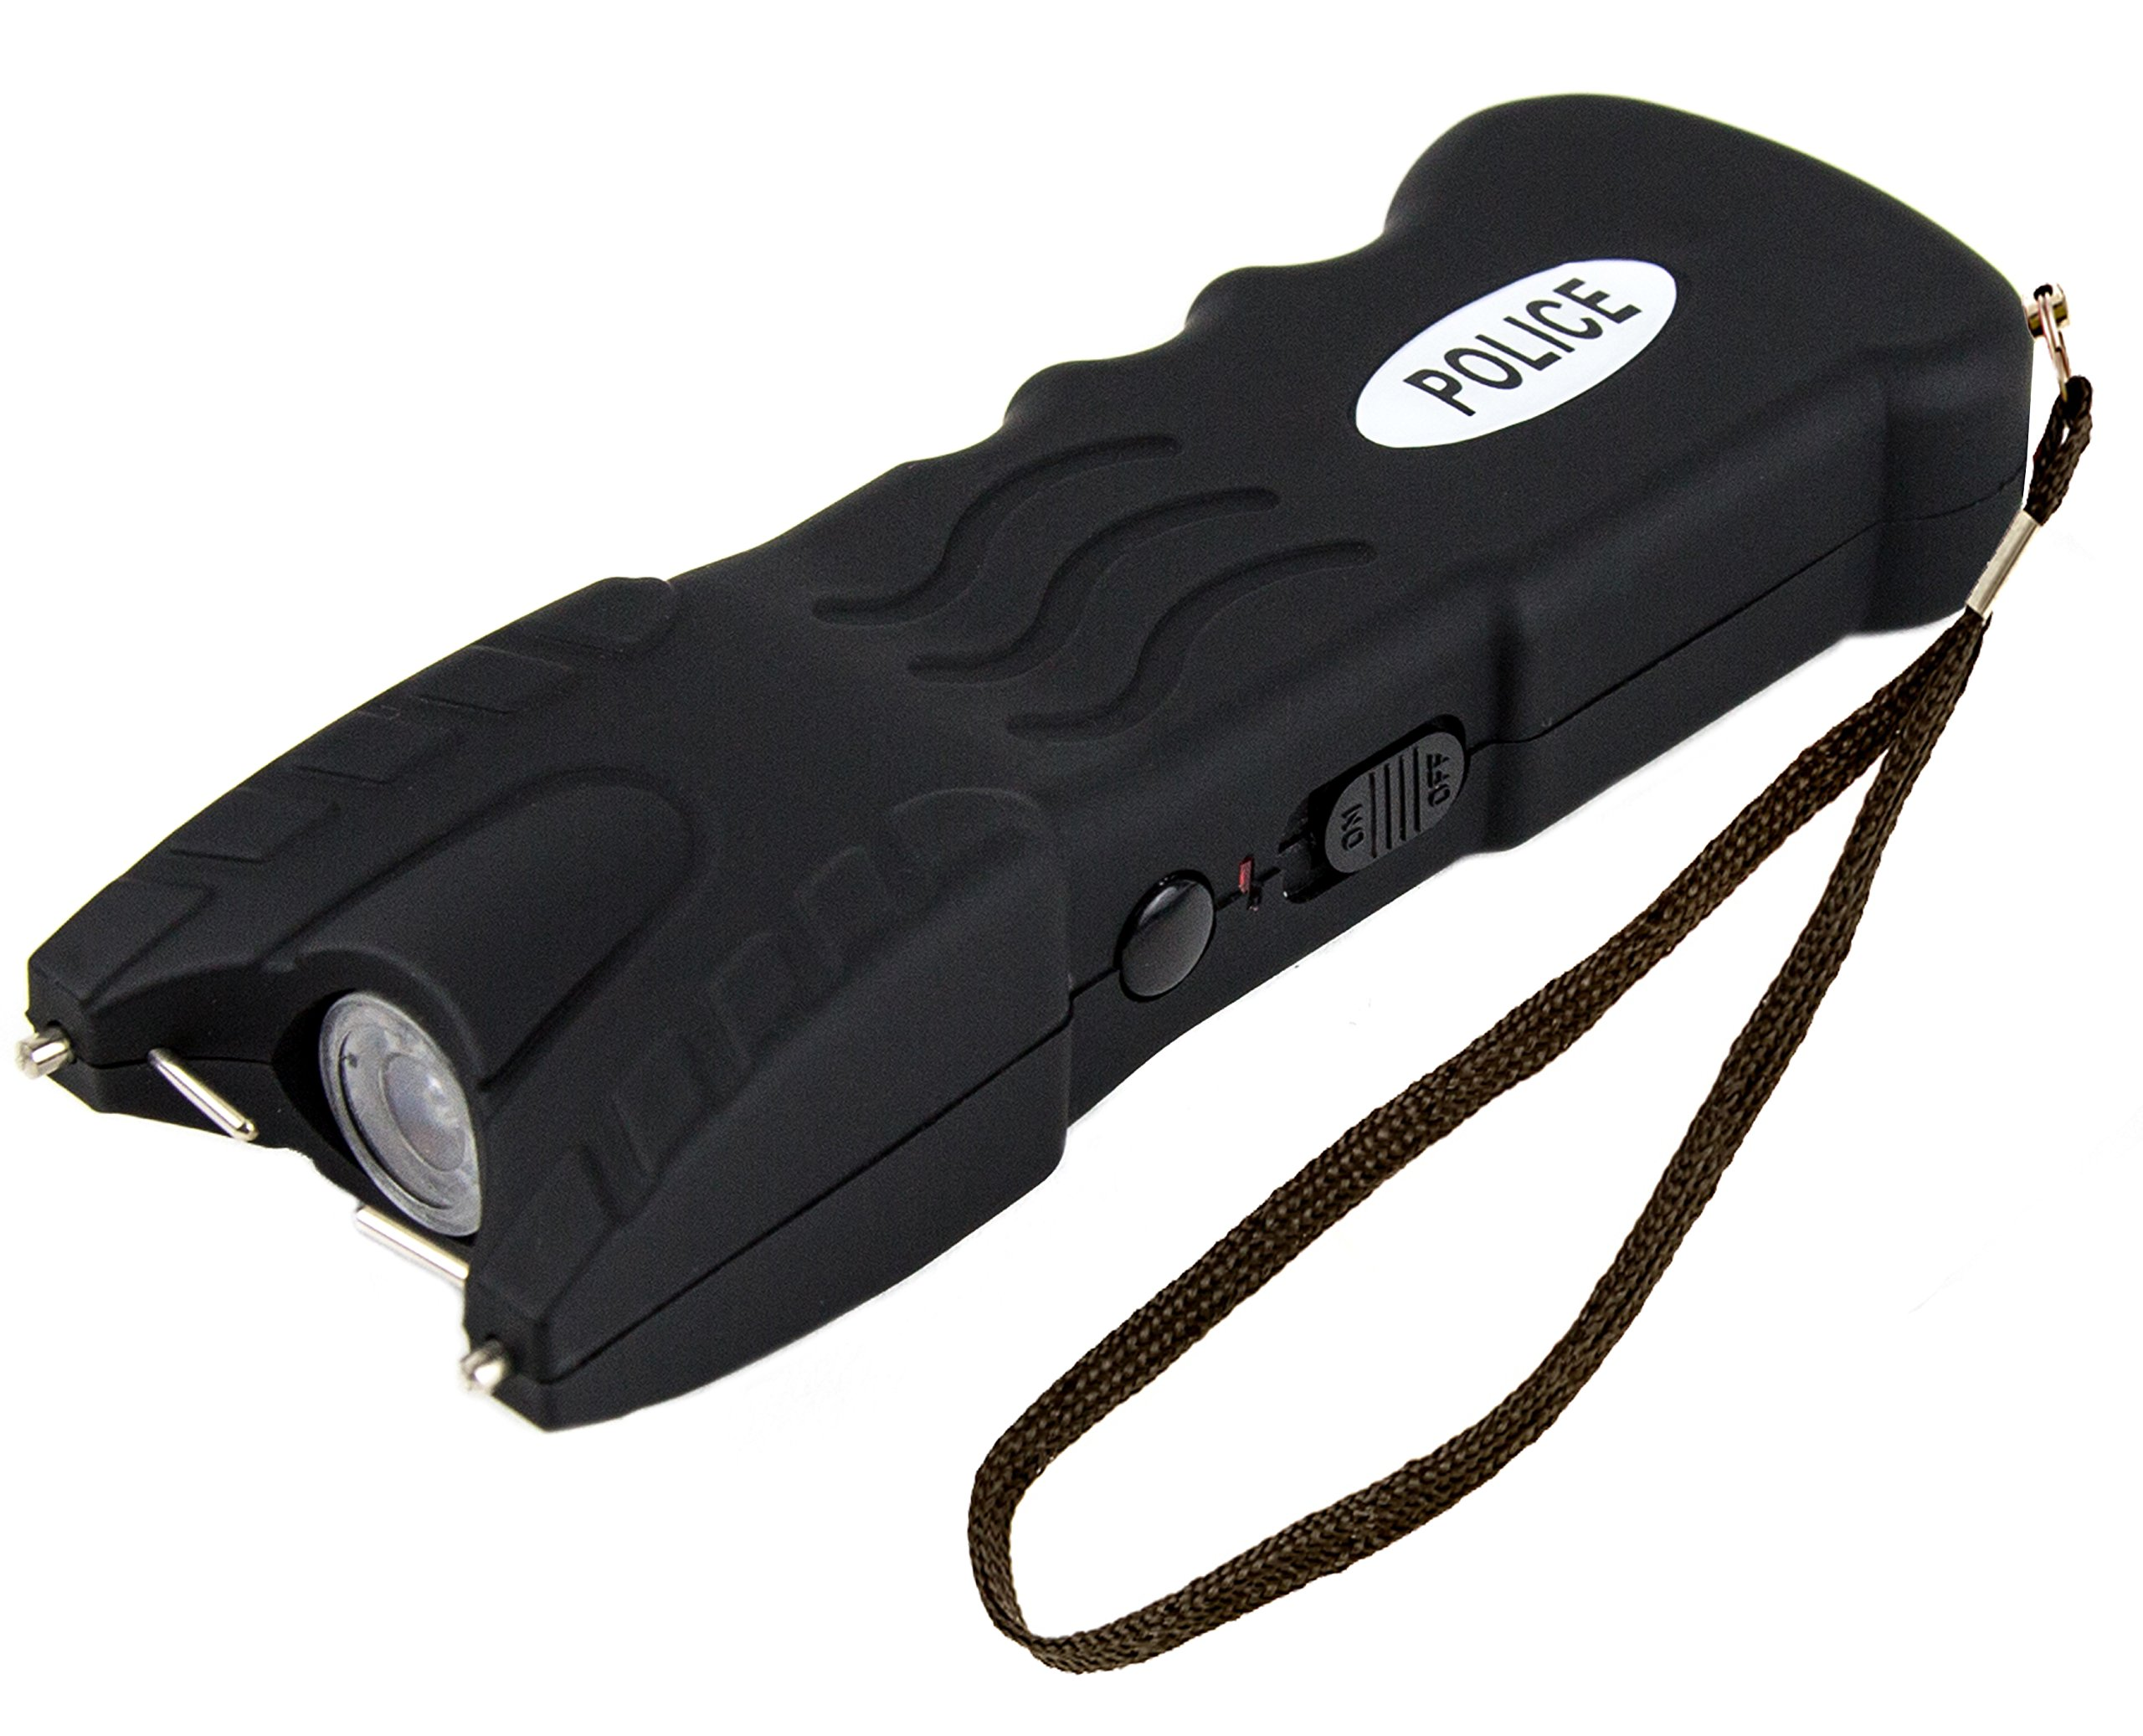 Police 916B - Max Voltage Heavy Duty Stun Gun - Rechargeable With Safety Disable Pin LED Light and Holster Case, Black